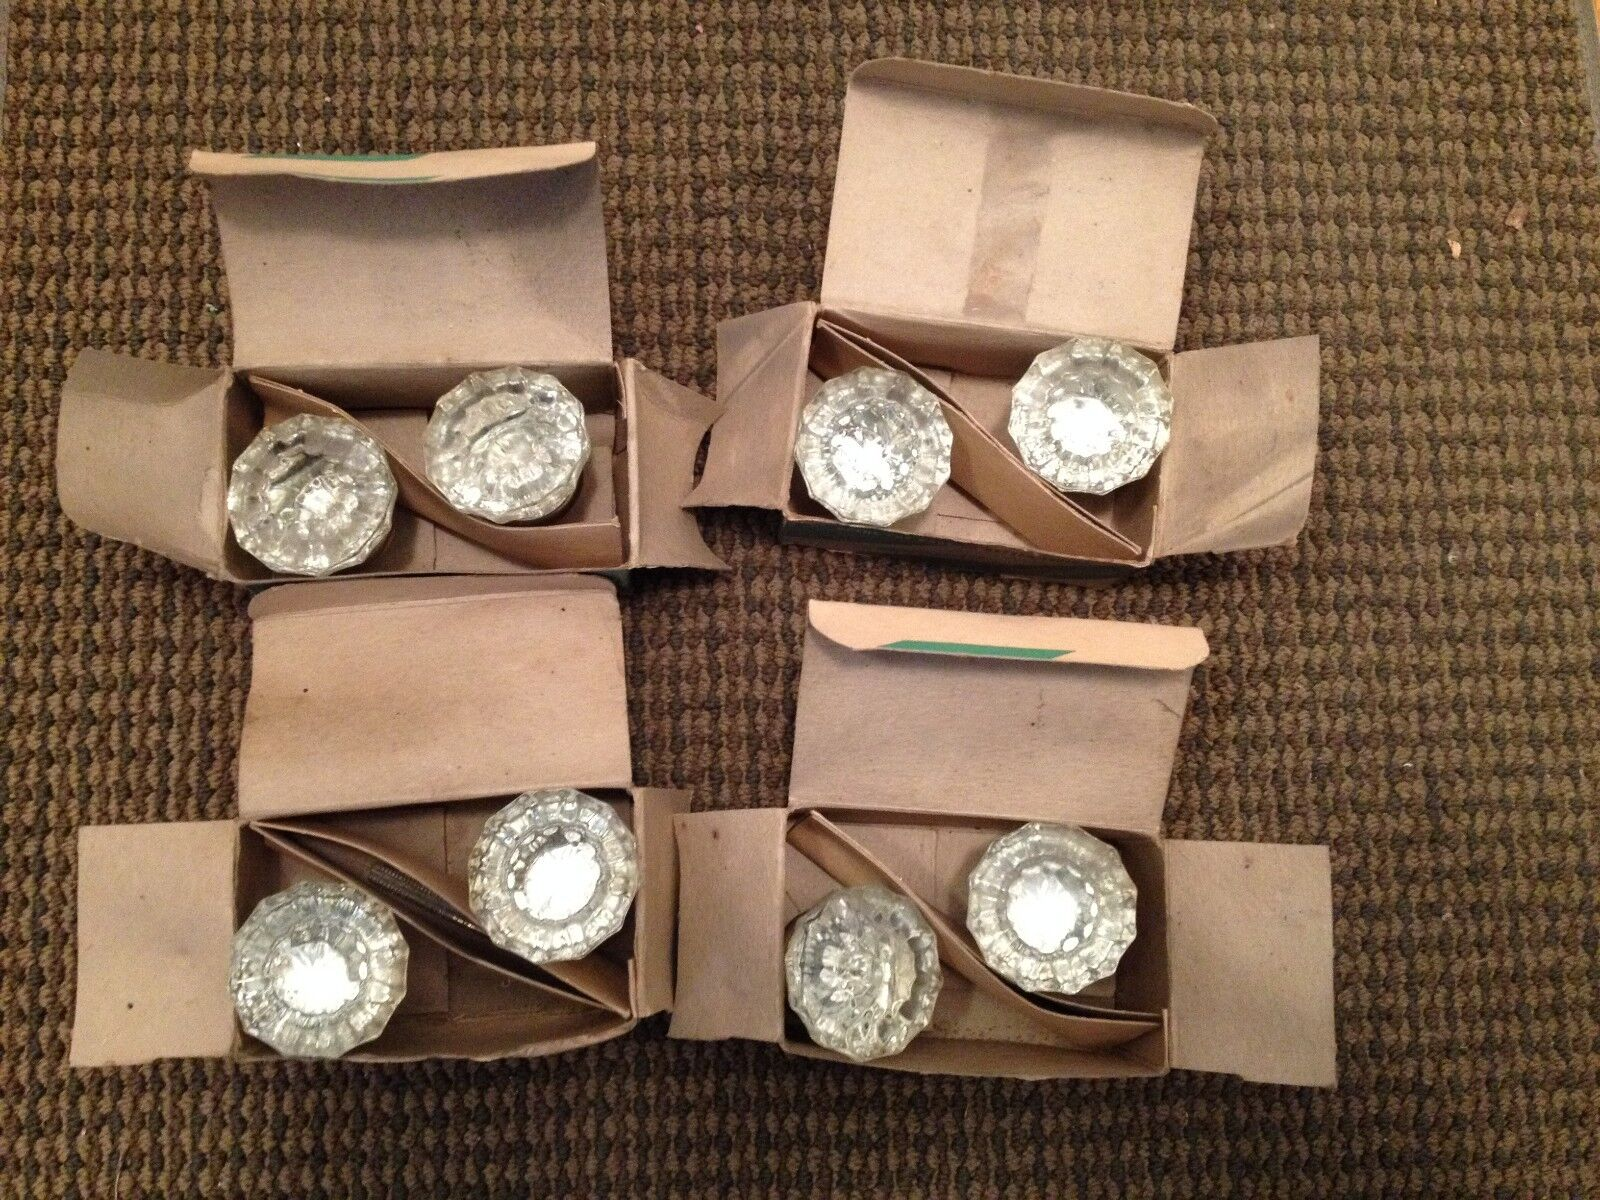 Vintage Tegco Glass Door Knobs Brass Finish 4 Pairs In Original Boxes Look New